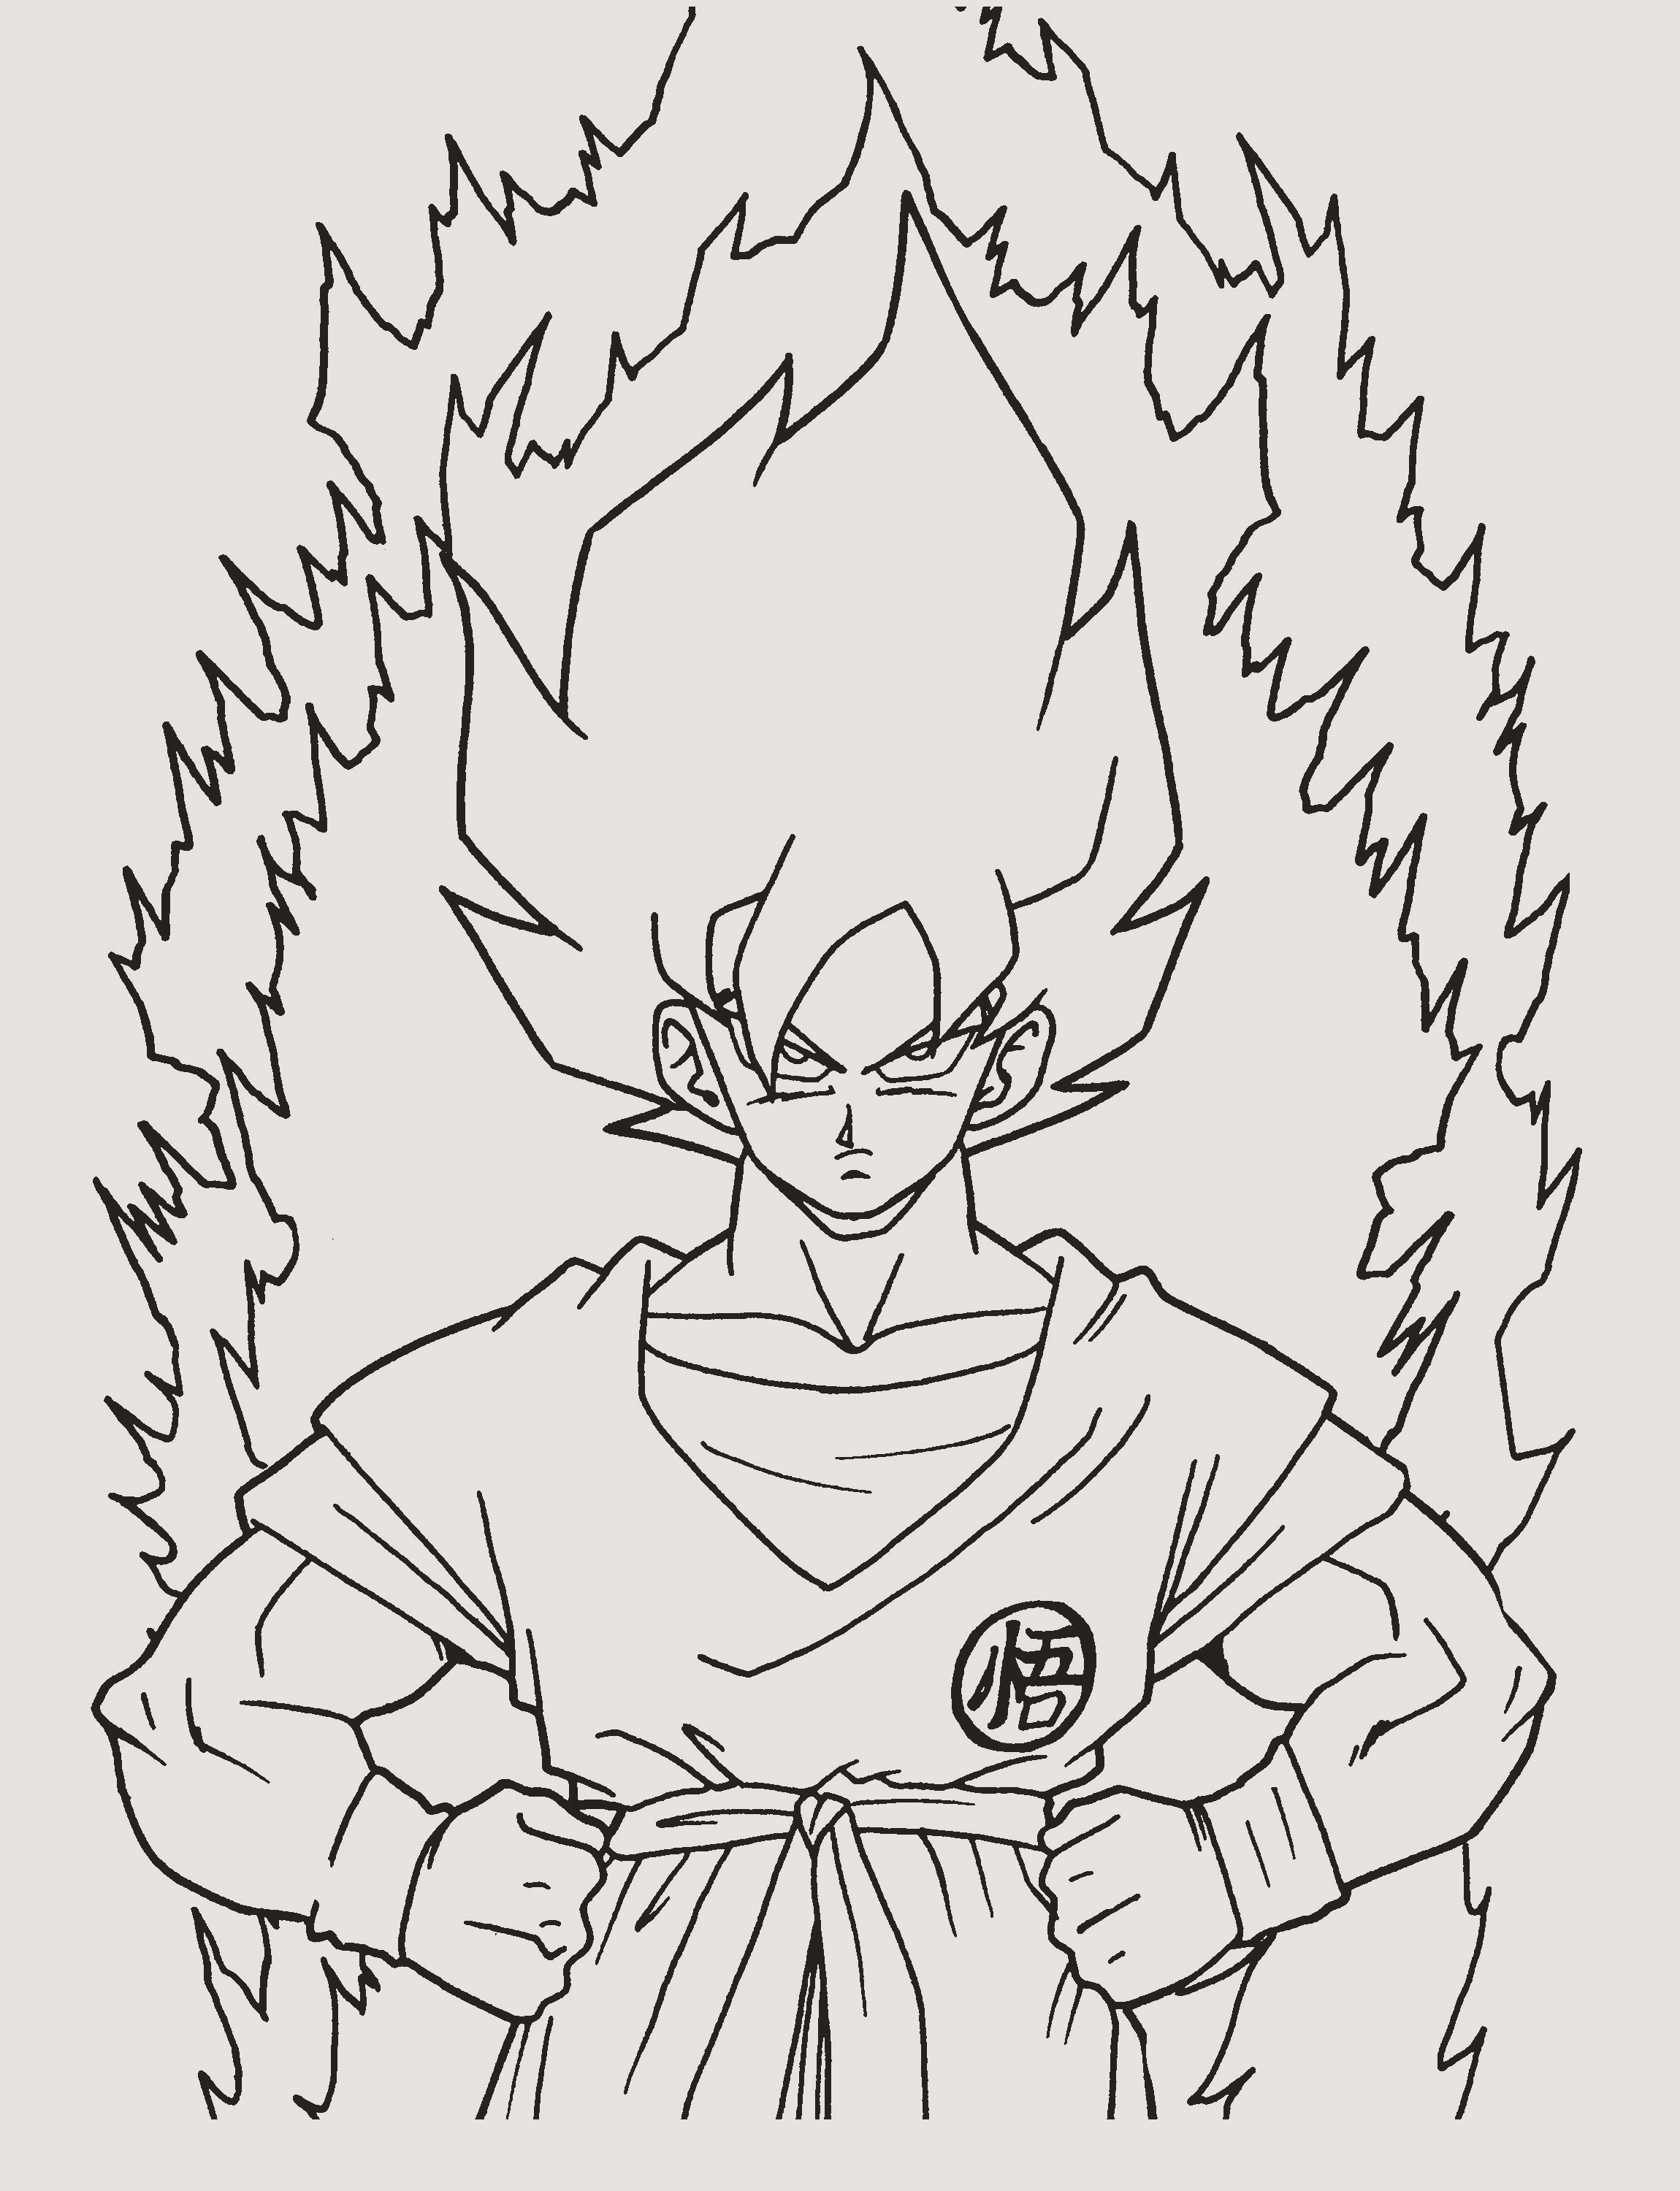 Ausmalbilder Dragons Frisch Dbz Gt Coloring Pages Awesome 30 Super Dragon Ball Bilder